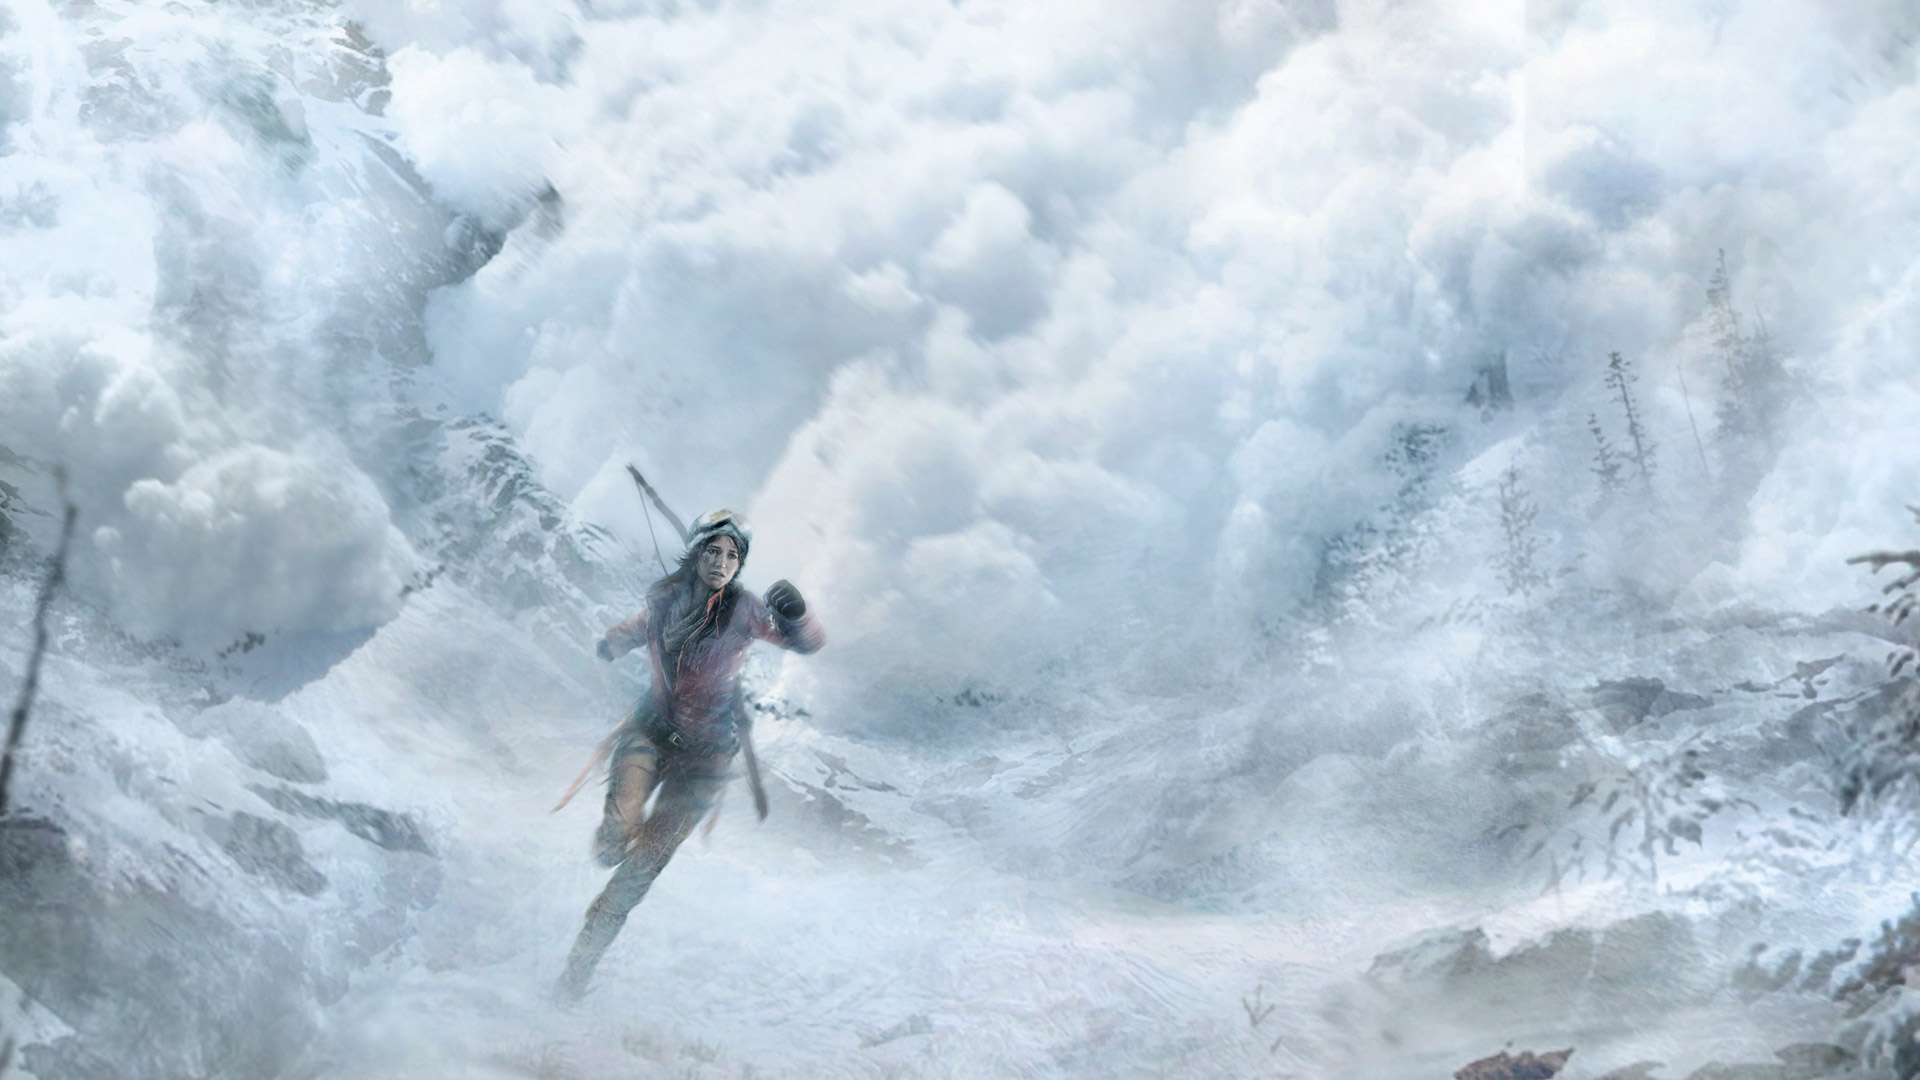 Free Rise Of The Tomb Raider Wallpaper In - Зима , HD Wallpaper & Backgrounds